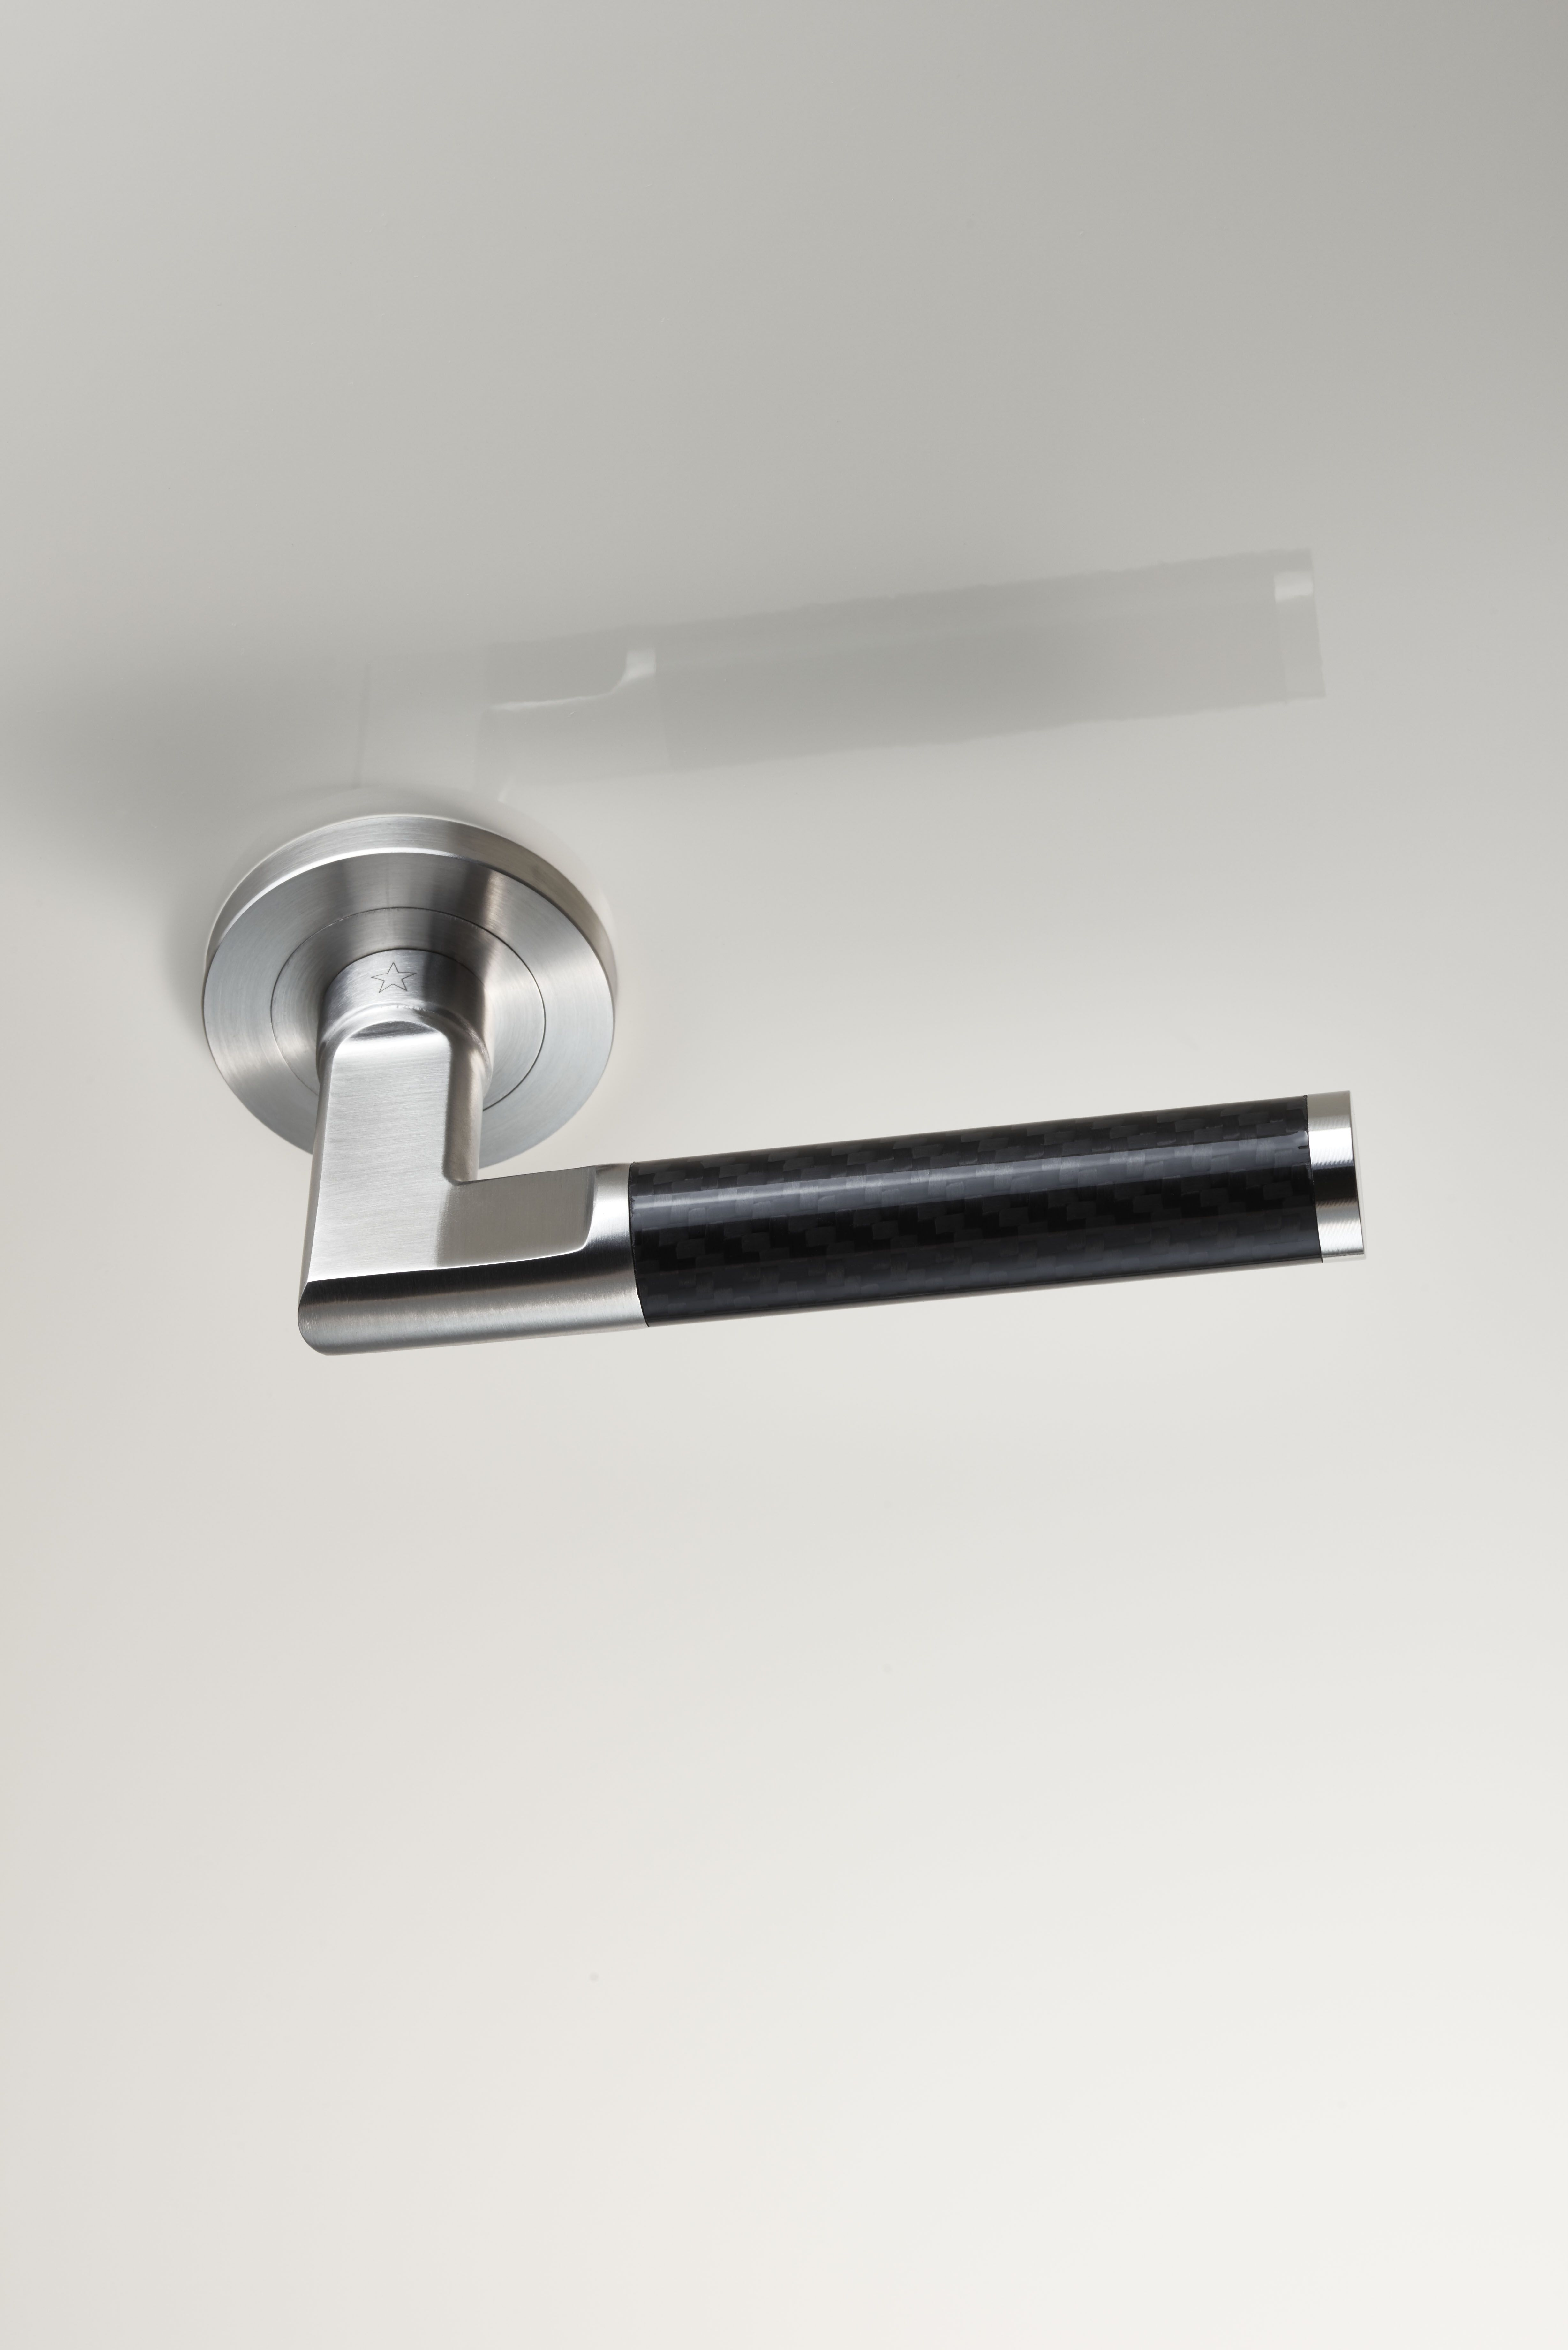 Carbon Fibre Handle On A Concealed Fix Threaded Slim Rose A Straight Round Bar Handle With A Carbon Fiber Midsection Th Modern Door Carbon Fiber Door Handles